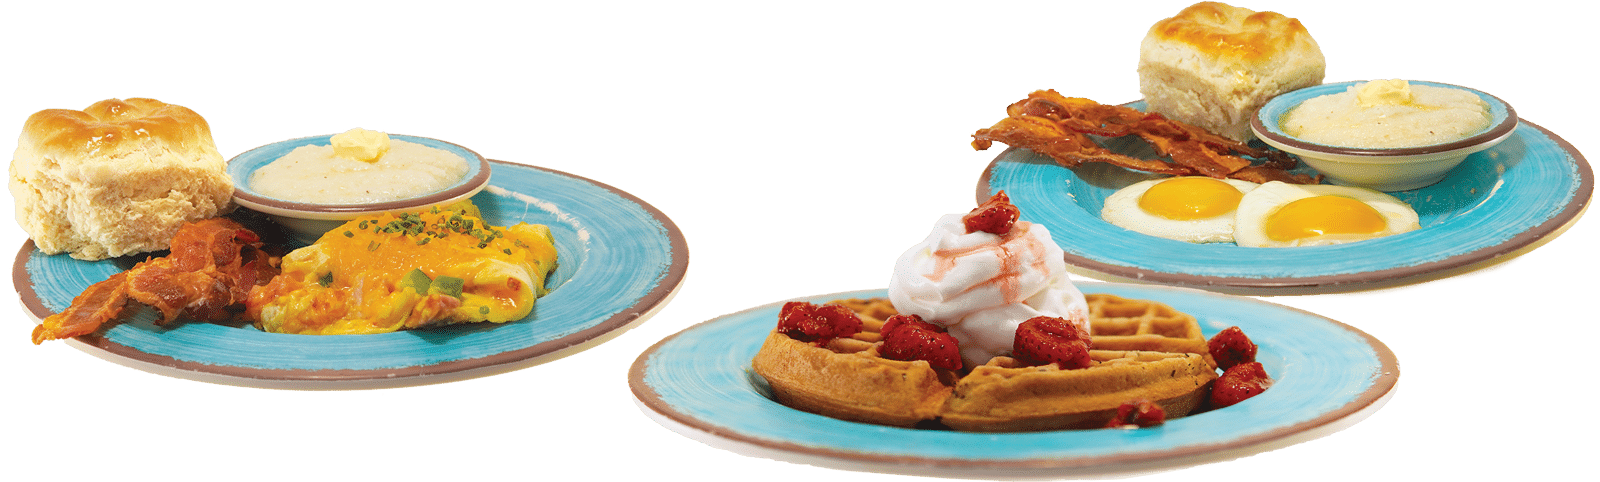 Eggs, Waffles and More Breakfast -McDavid's Cafe Southern Cuisine